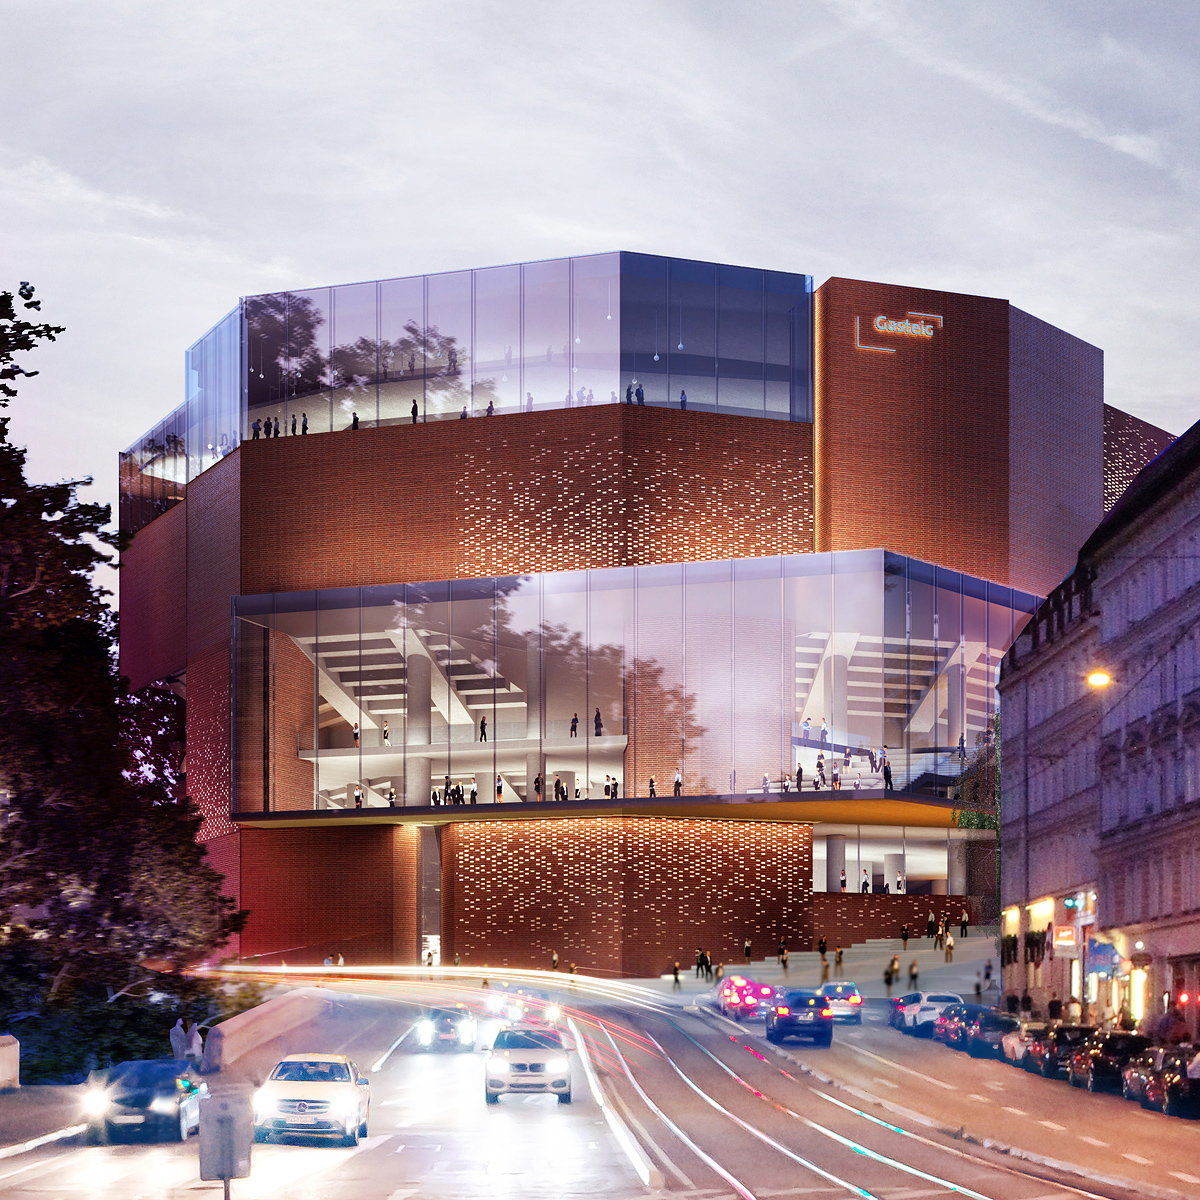 HENN Design Selected for Gasteig Munich